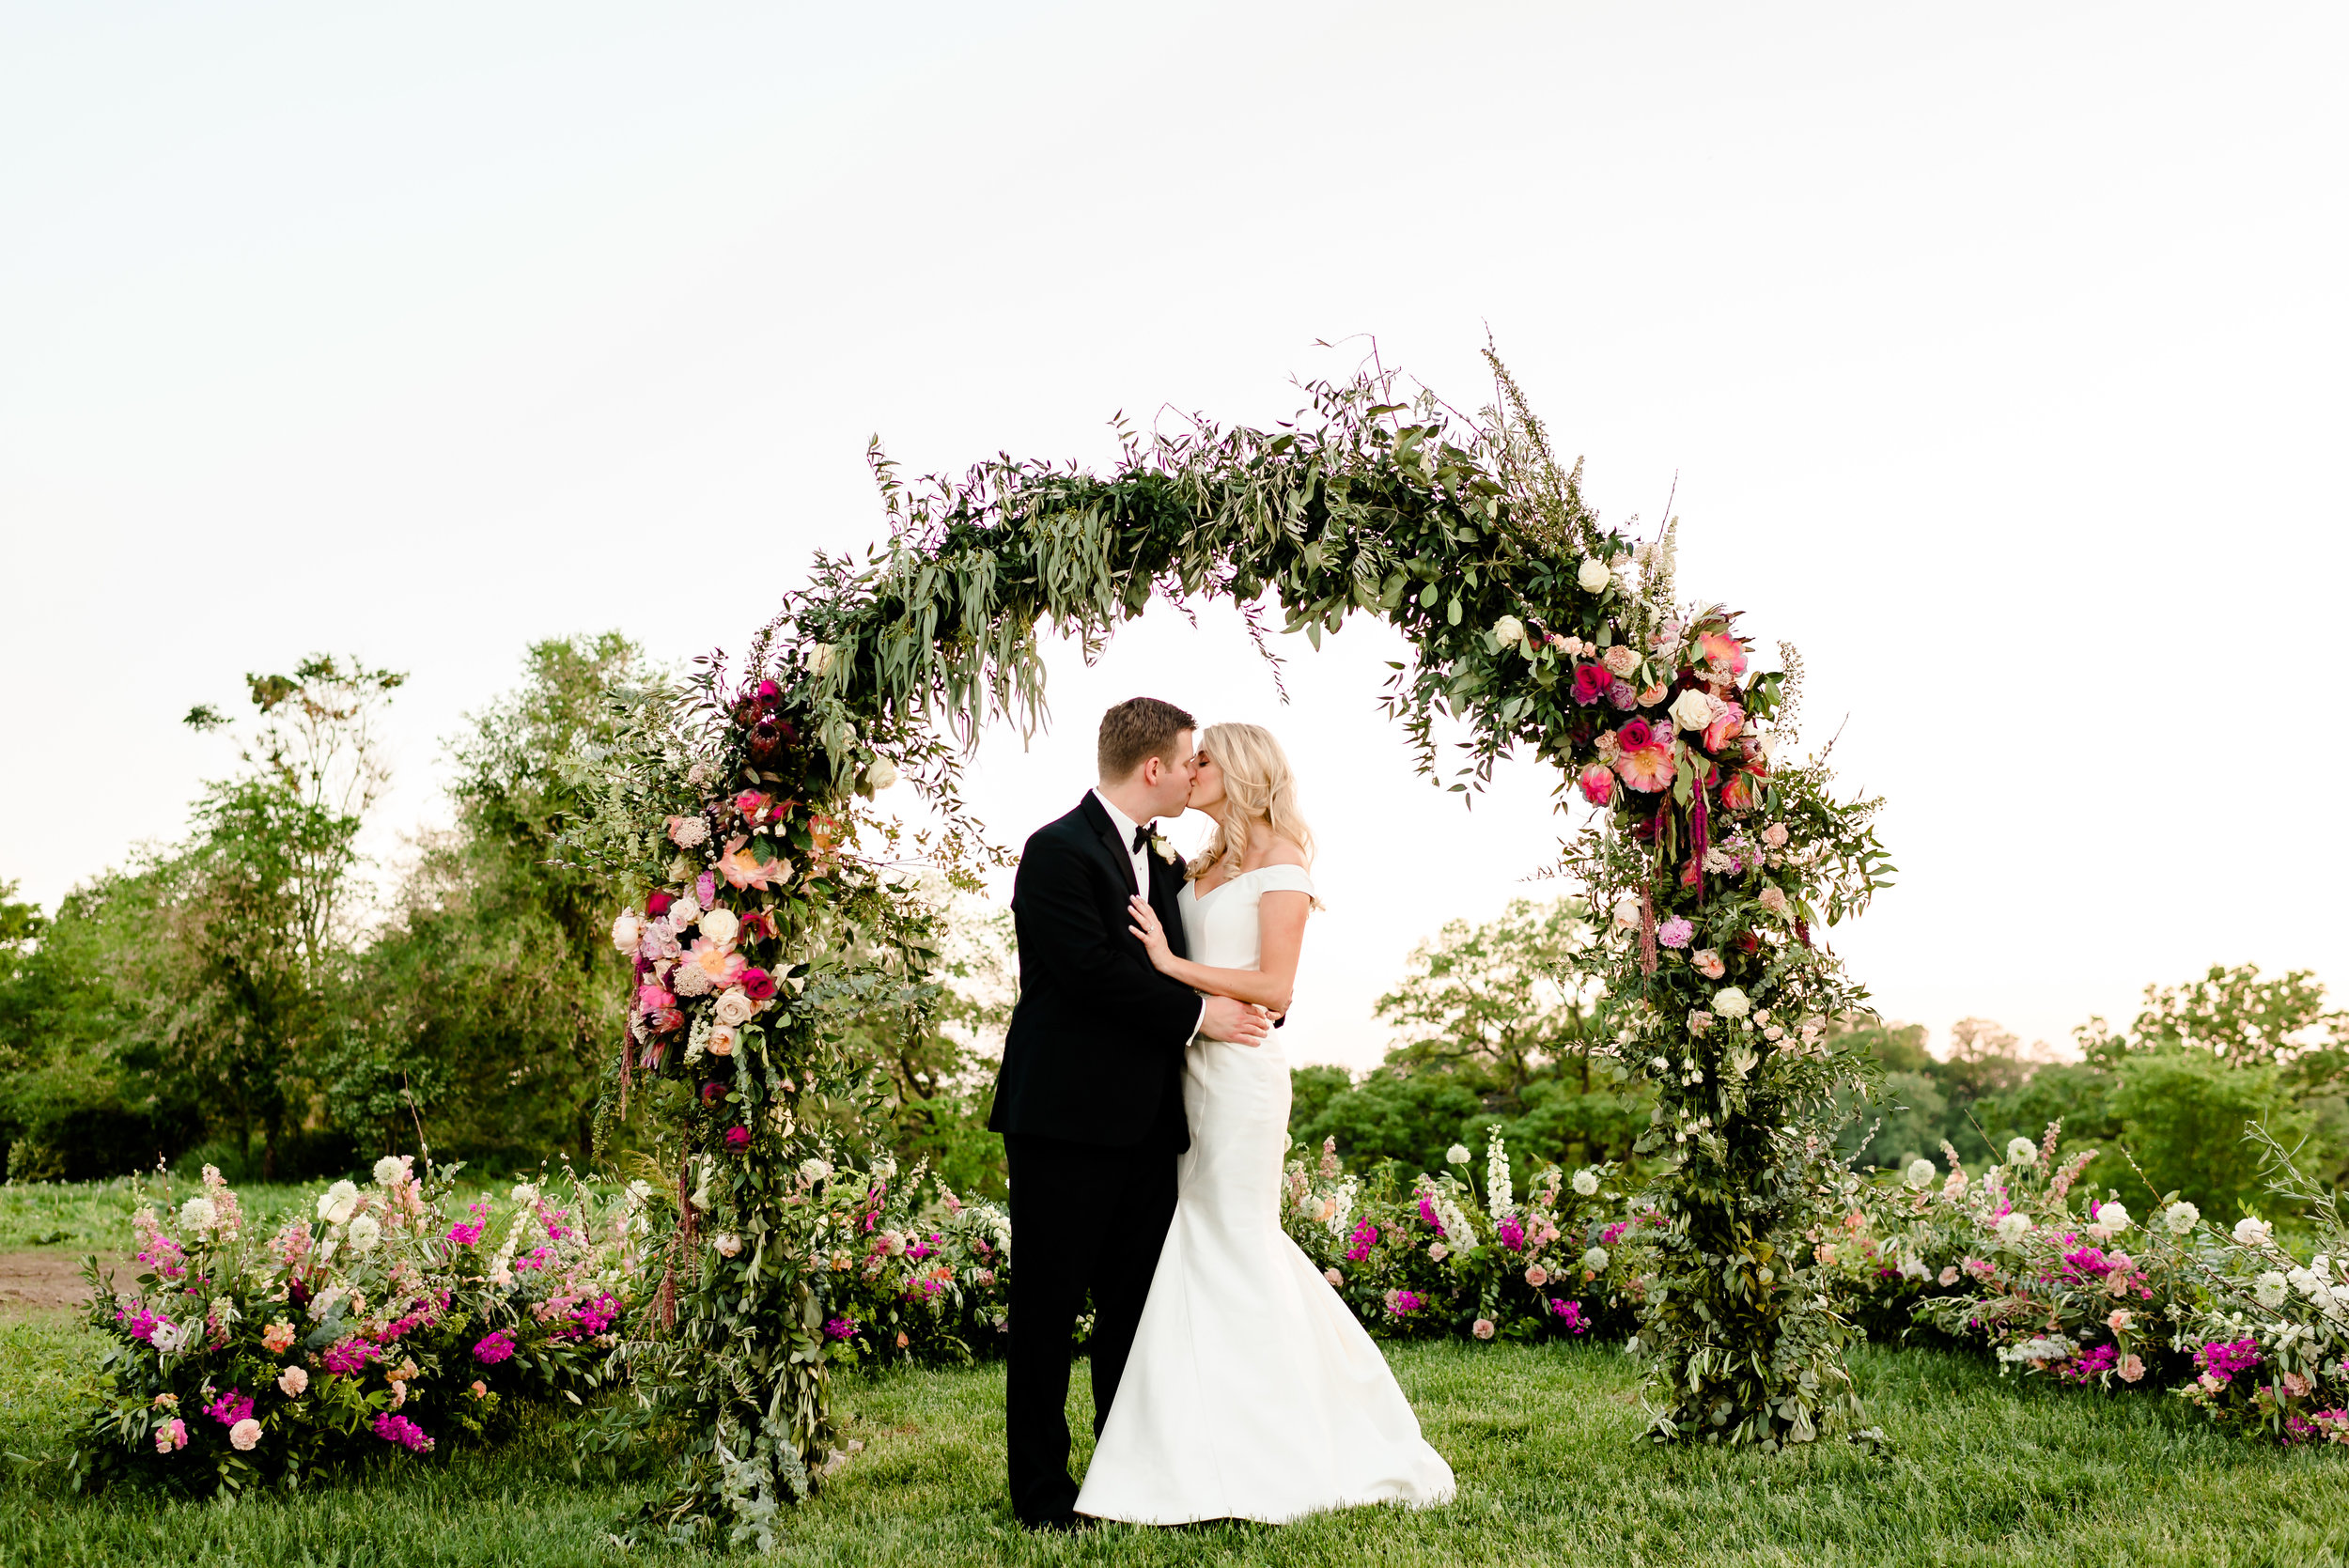 Historic John P Furber Farm Wedding - Cottage Grove, MN Luxury Wedding Photographer